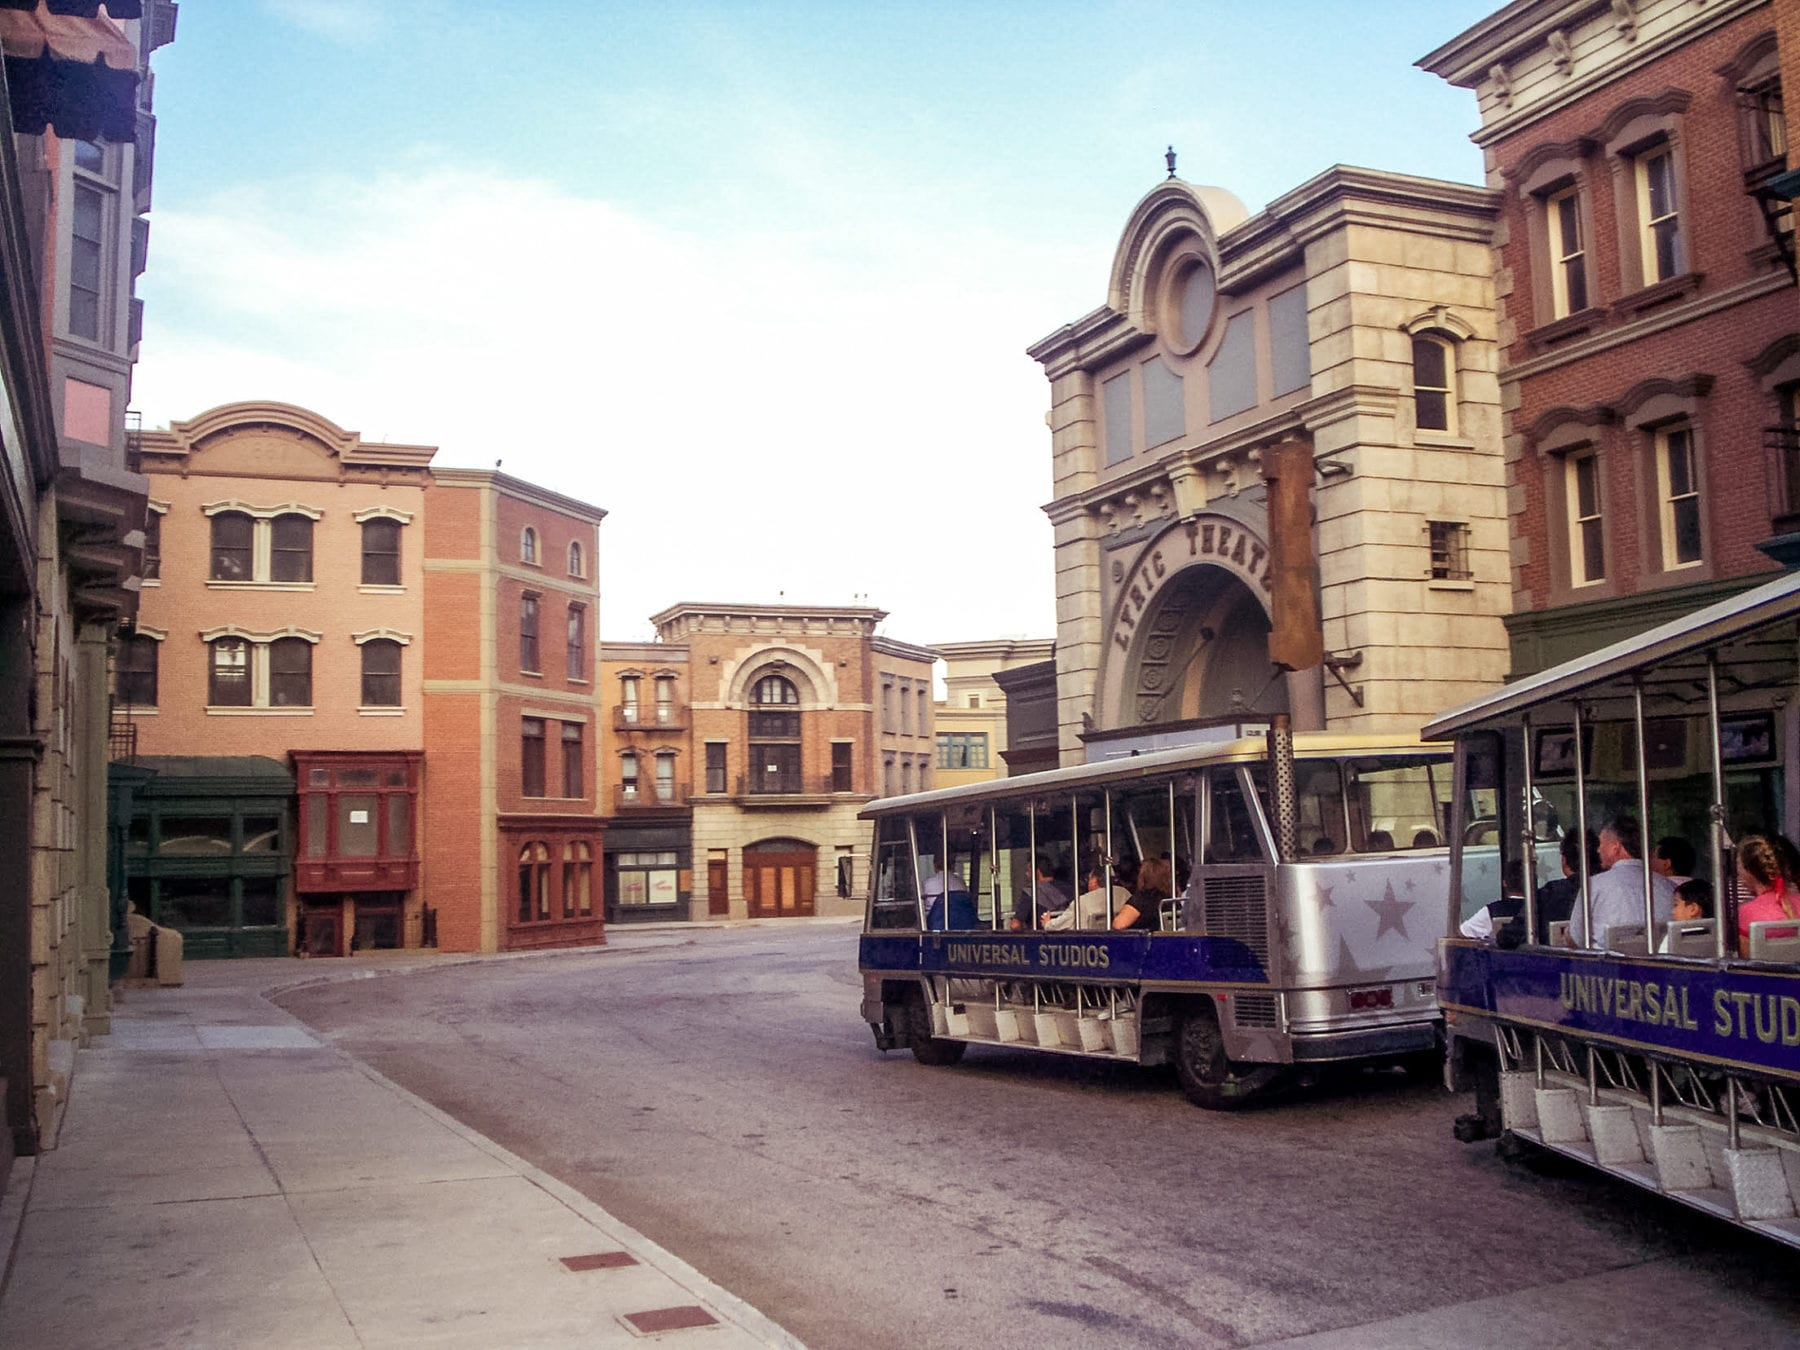 Amusement parks in the USA - Hollywood Universal Studios